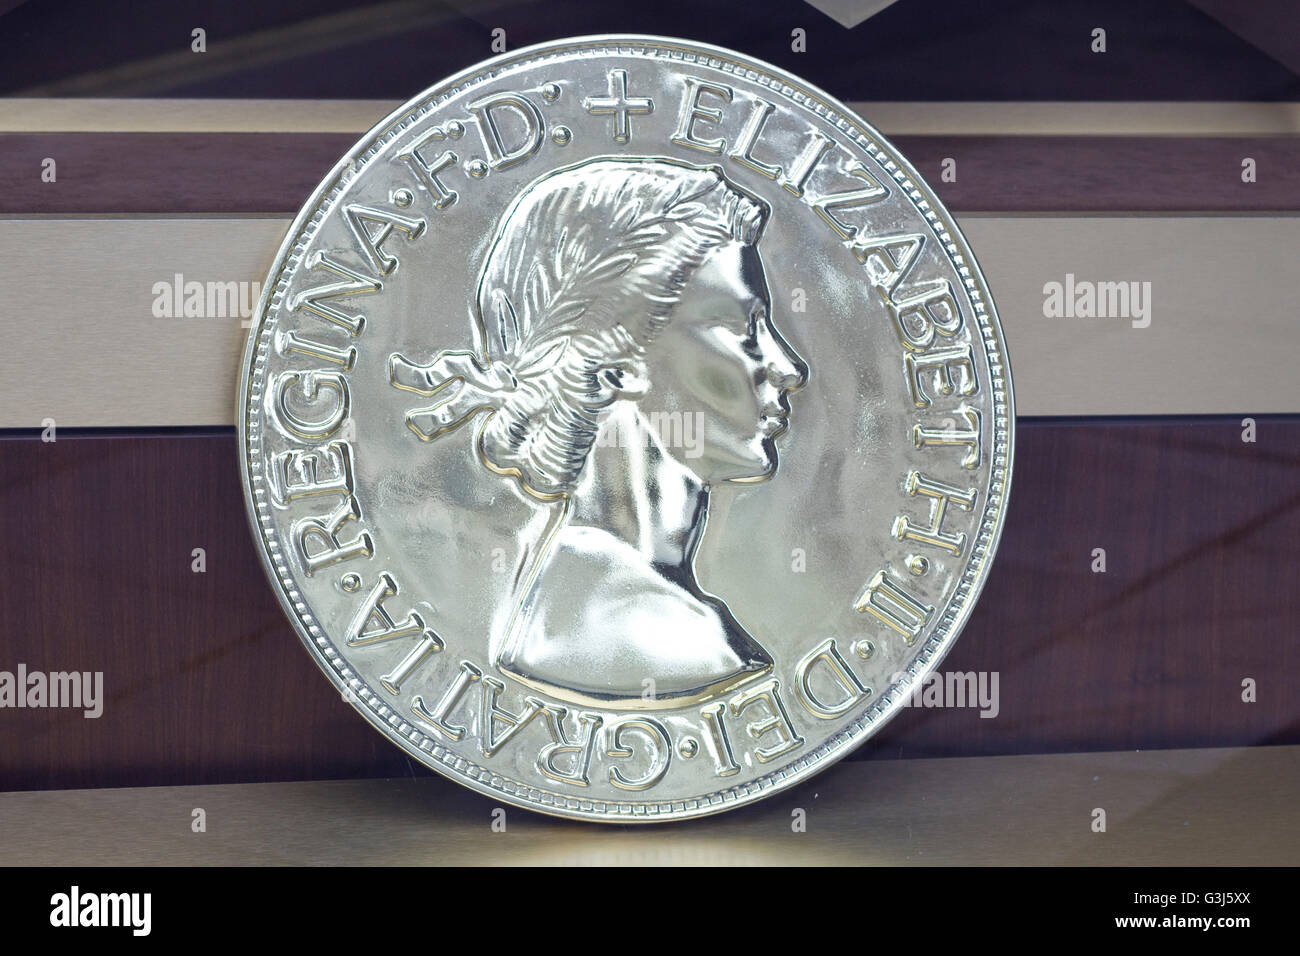 Display in a Shop window silver collectors coin with Queen Elizabeth 11 - Stock Image